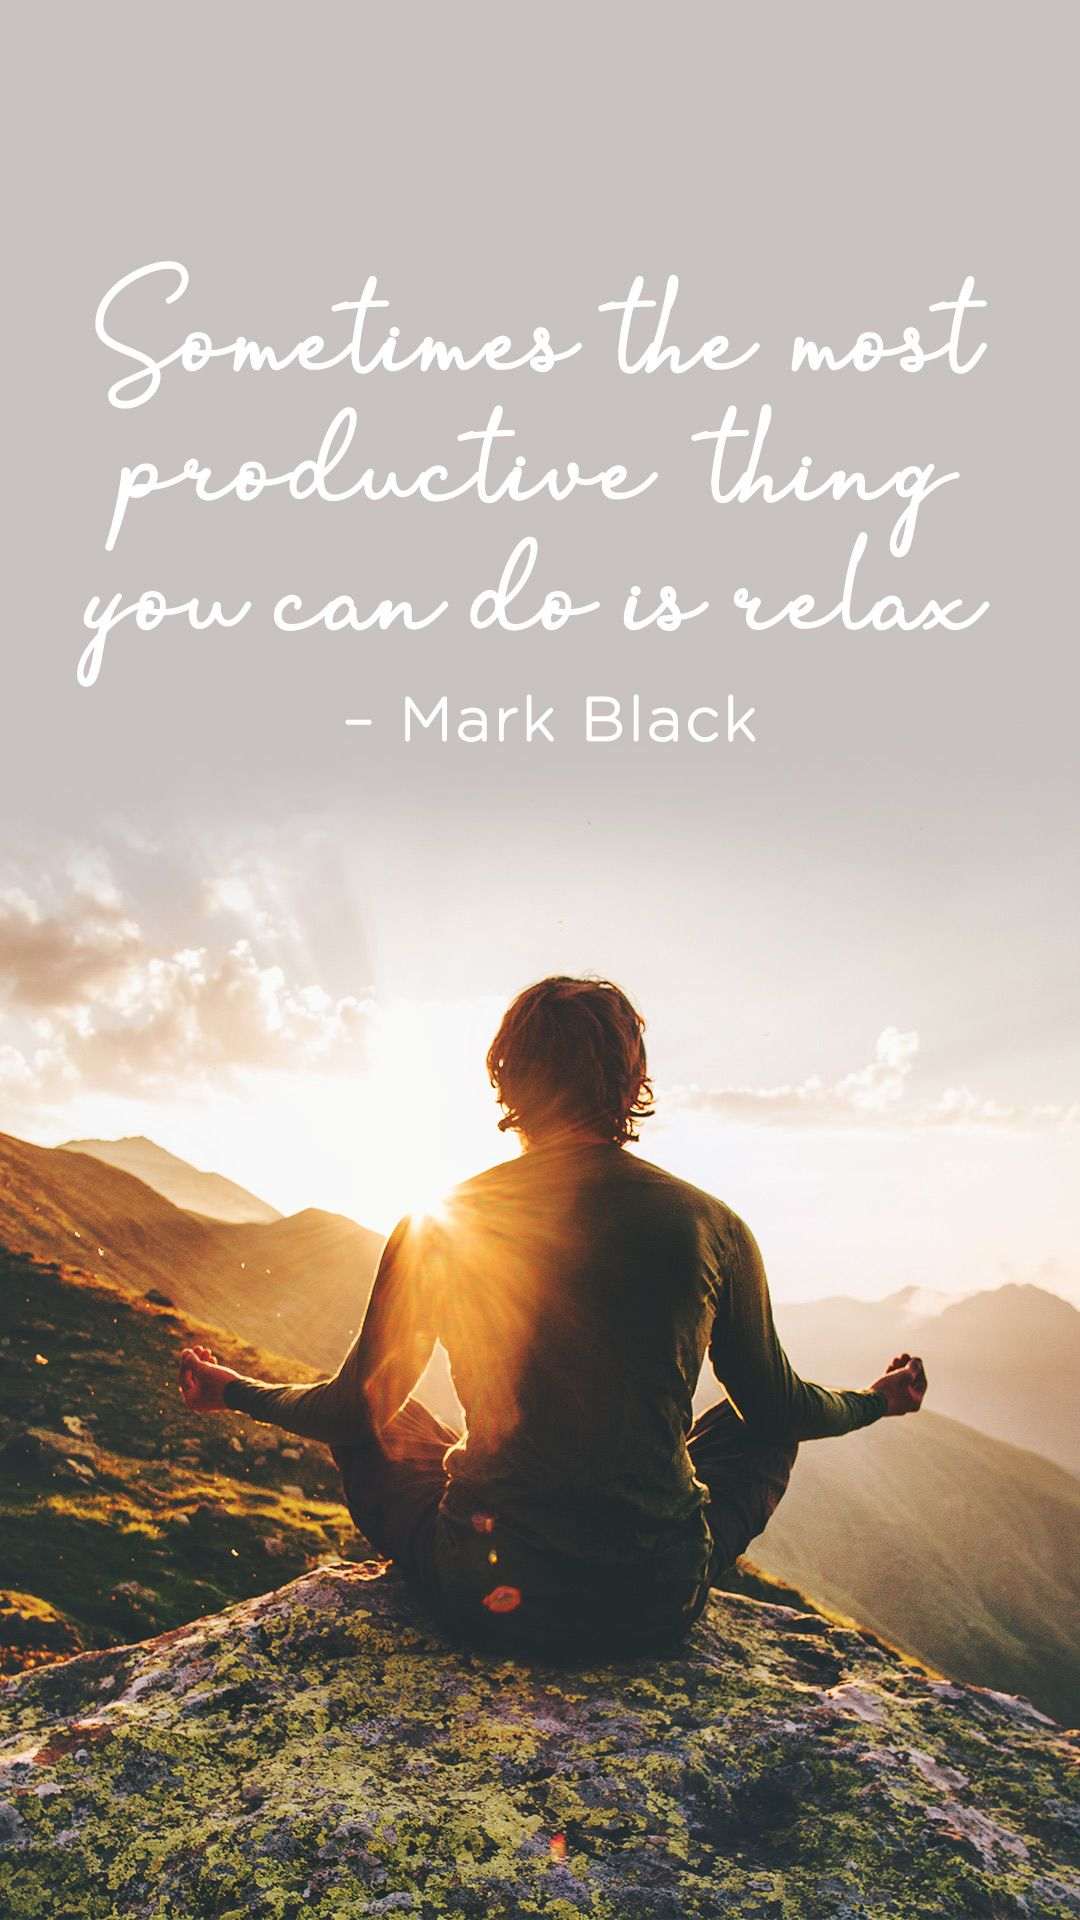 Sometimes The Most Productive Thing You Can Do Is Relax Quotes Sayings Relax Relax Quotes Sometimes Quotes Summer Quotes